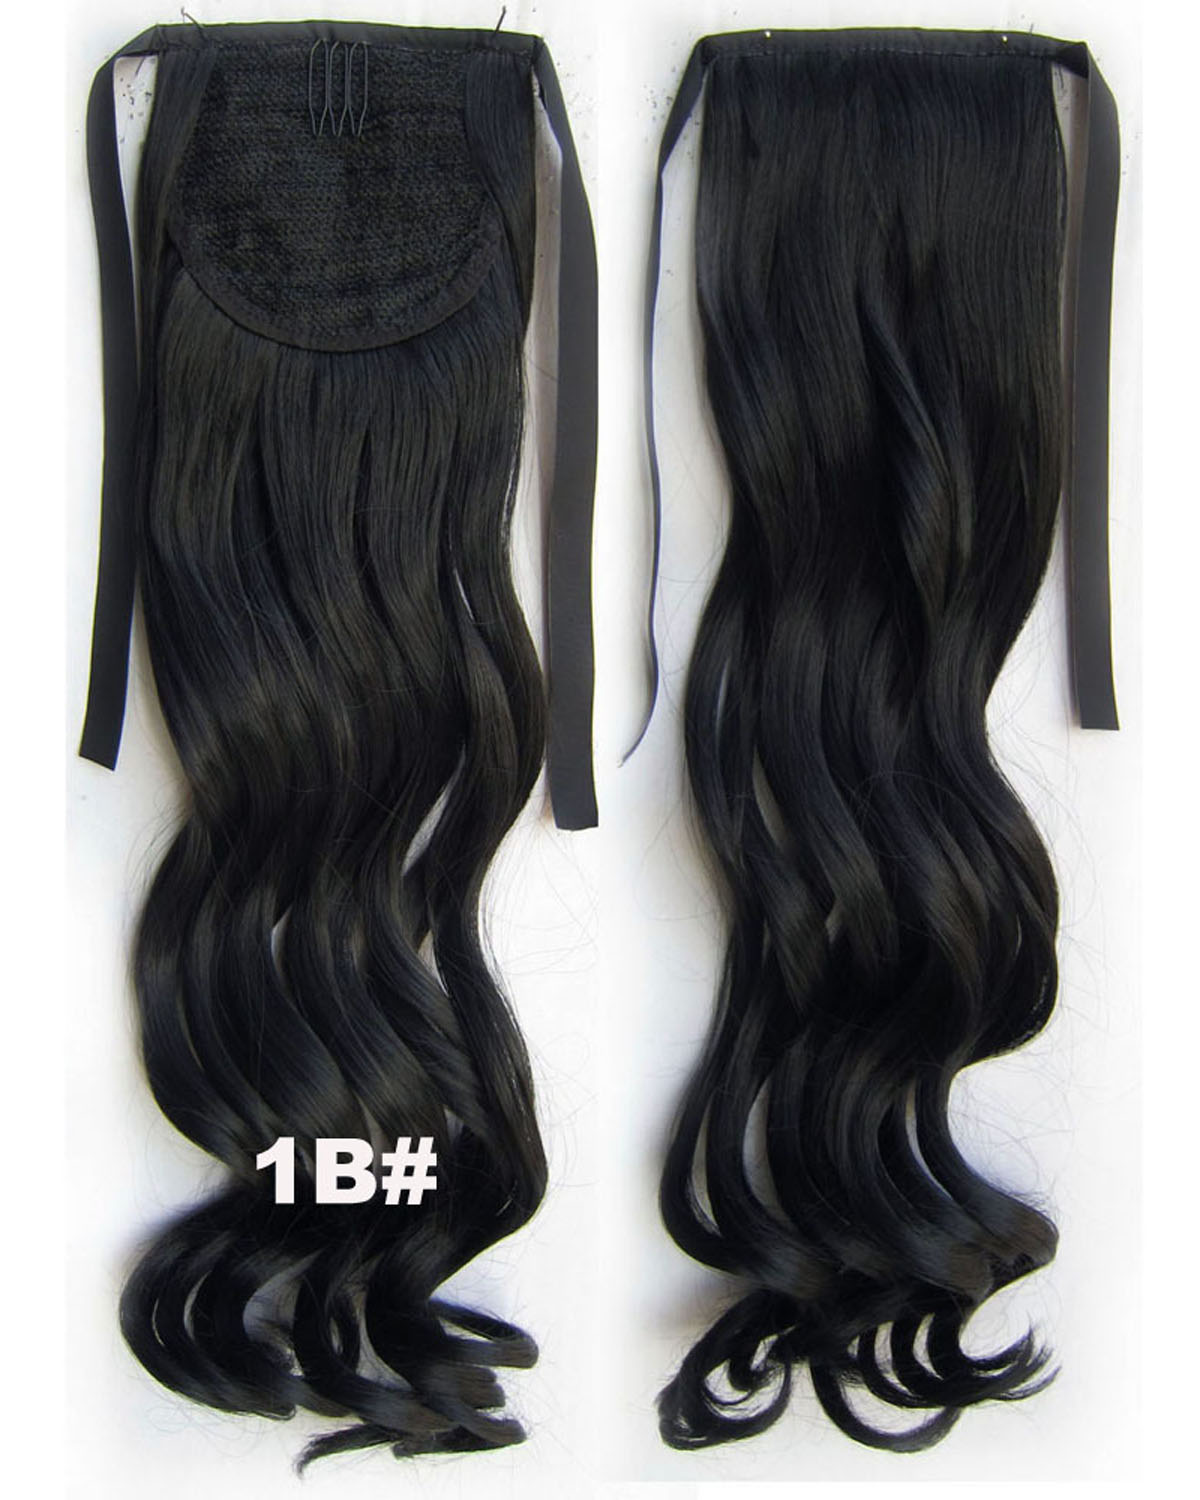 22 Inch Lady Mysterious Curly and Long Lace/Ribbon Synthetic Hair Ponytail1B#